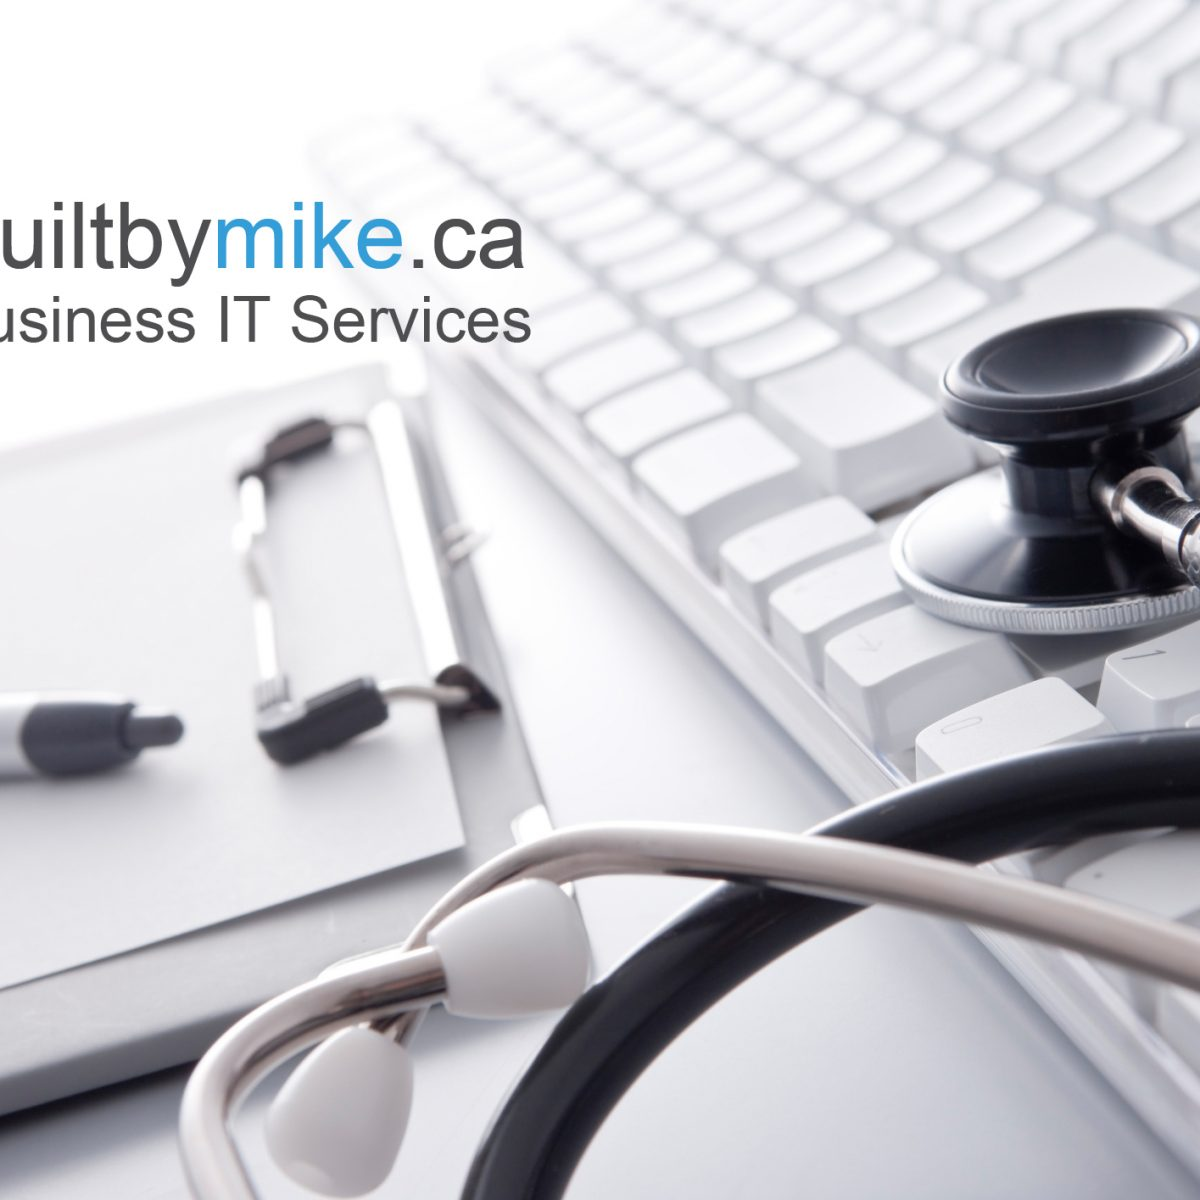 Builtbymike.ca Business IT Services